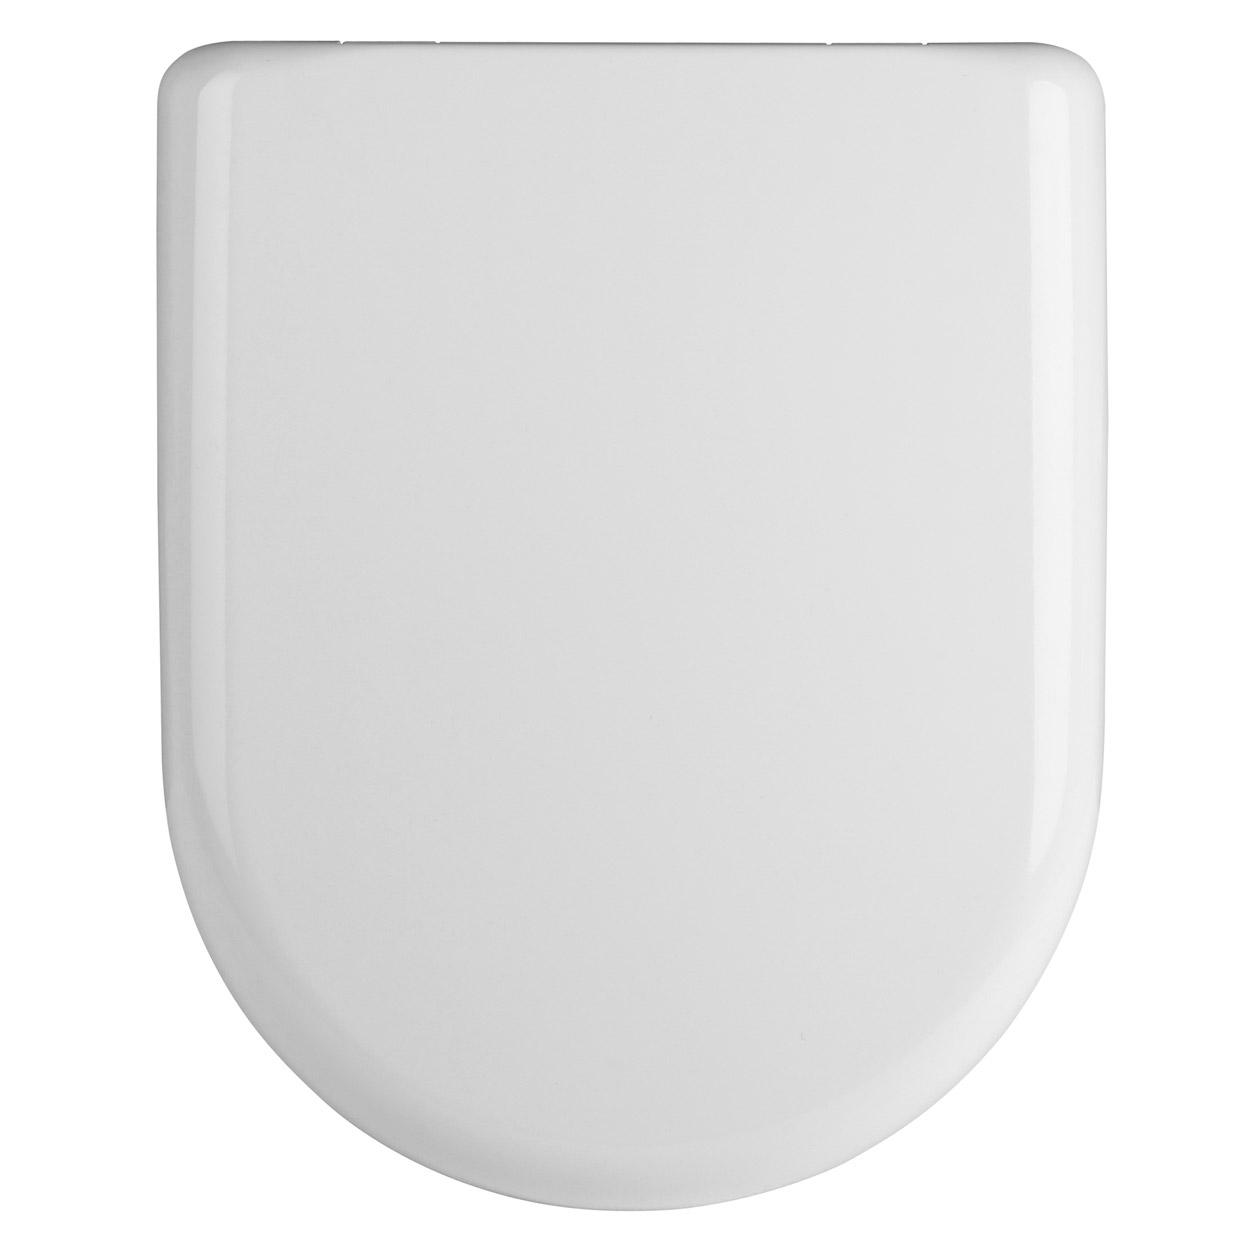 Premier Luxury D-Shaped Thermoplastic Toilet Seat, Soft Close Hinge, White